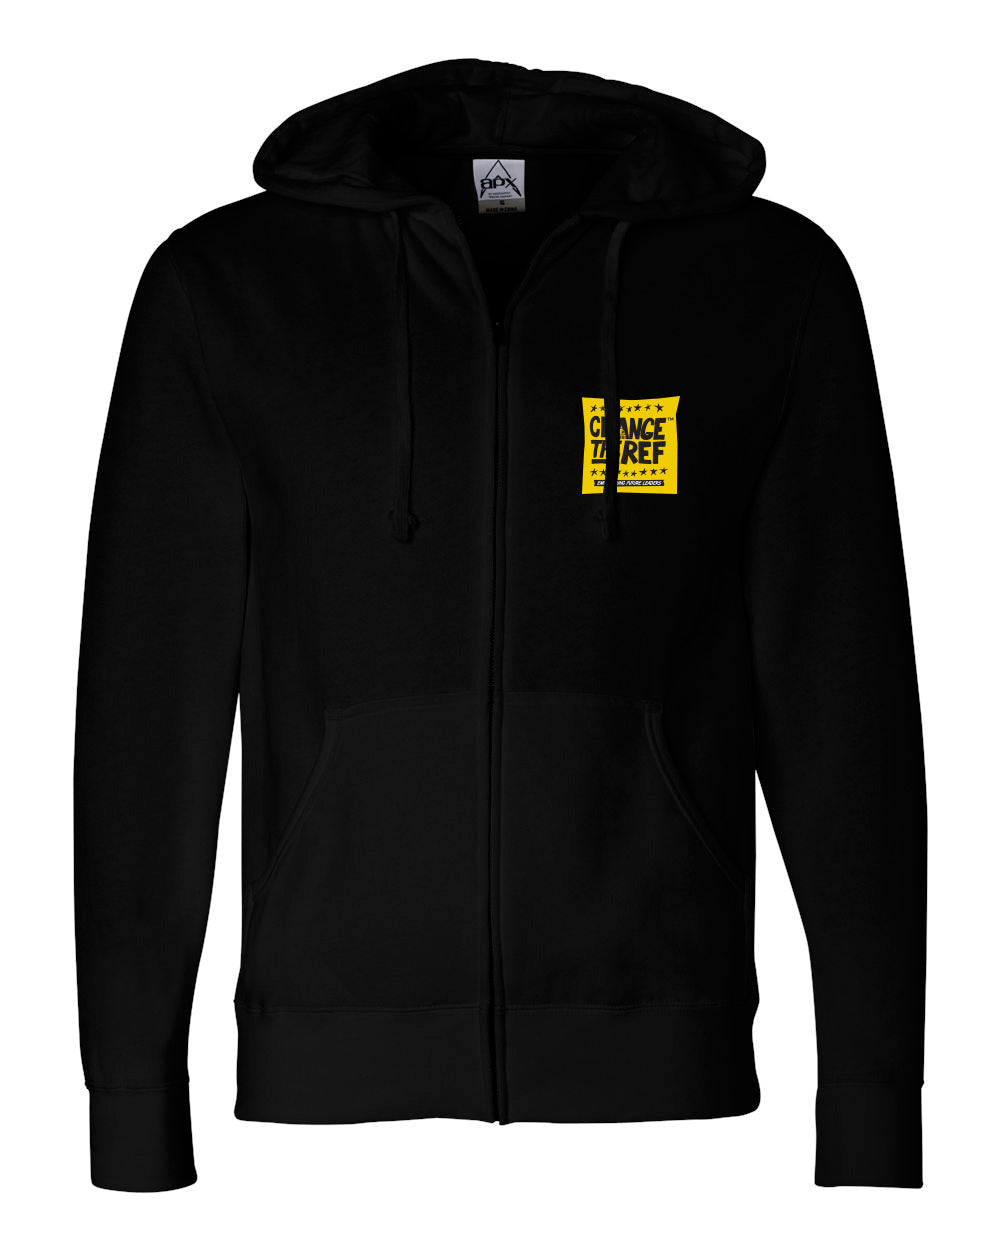 Demand a Change Zip Up Hoodie